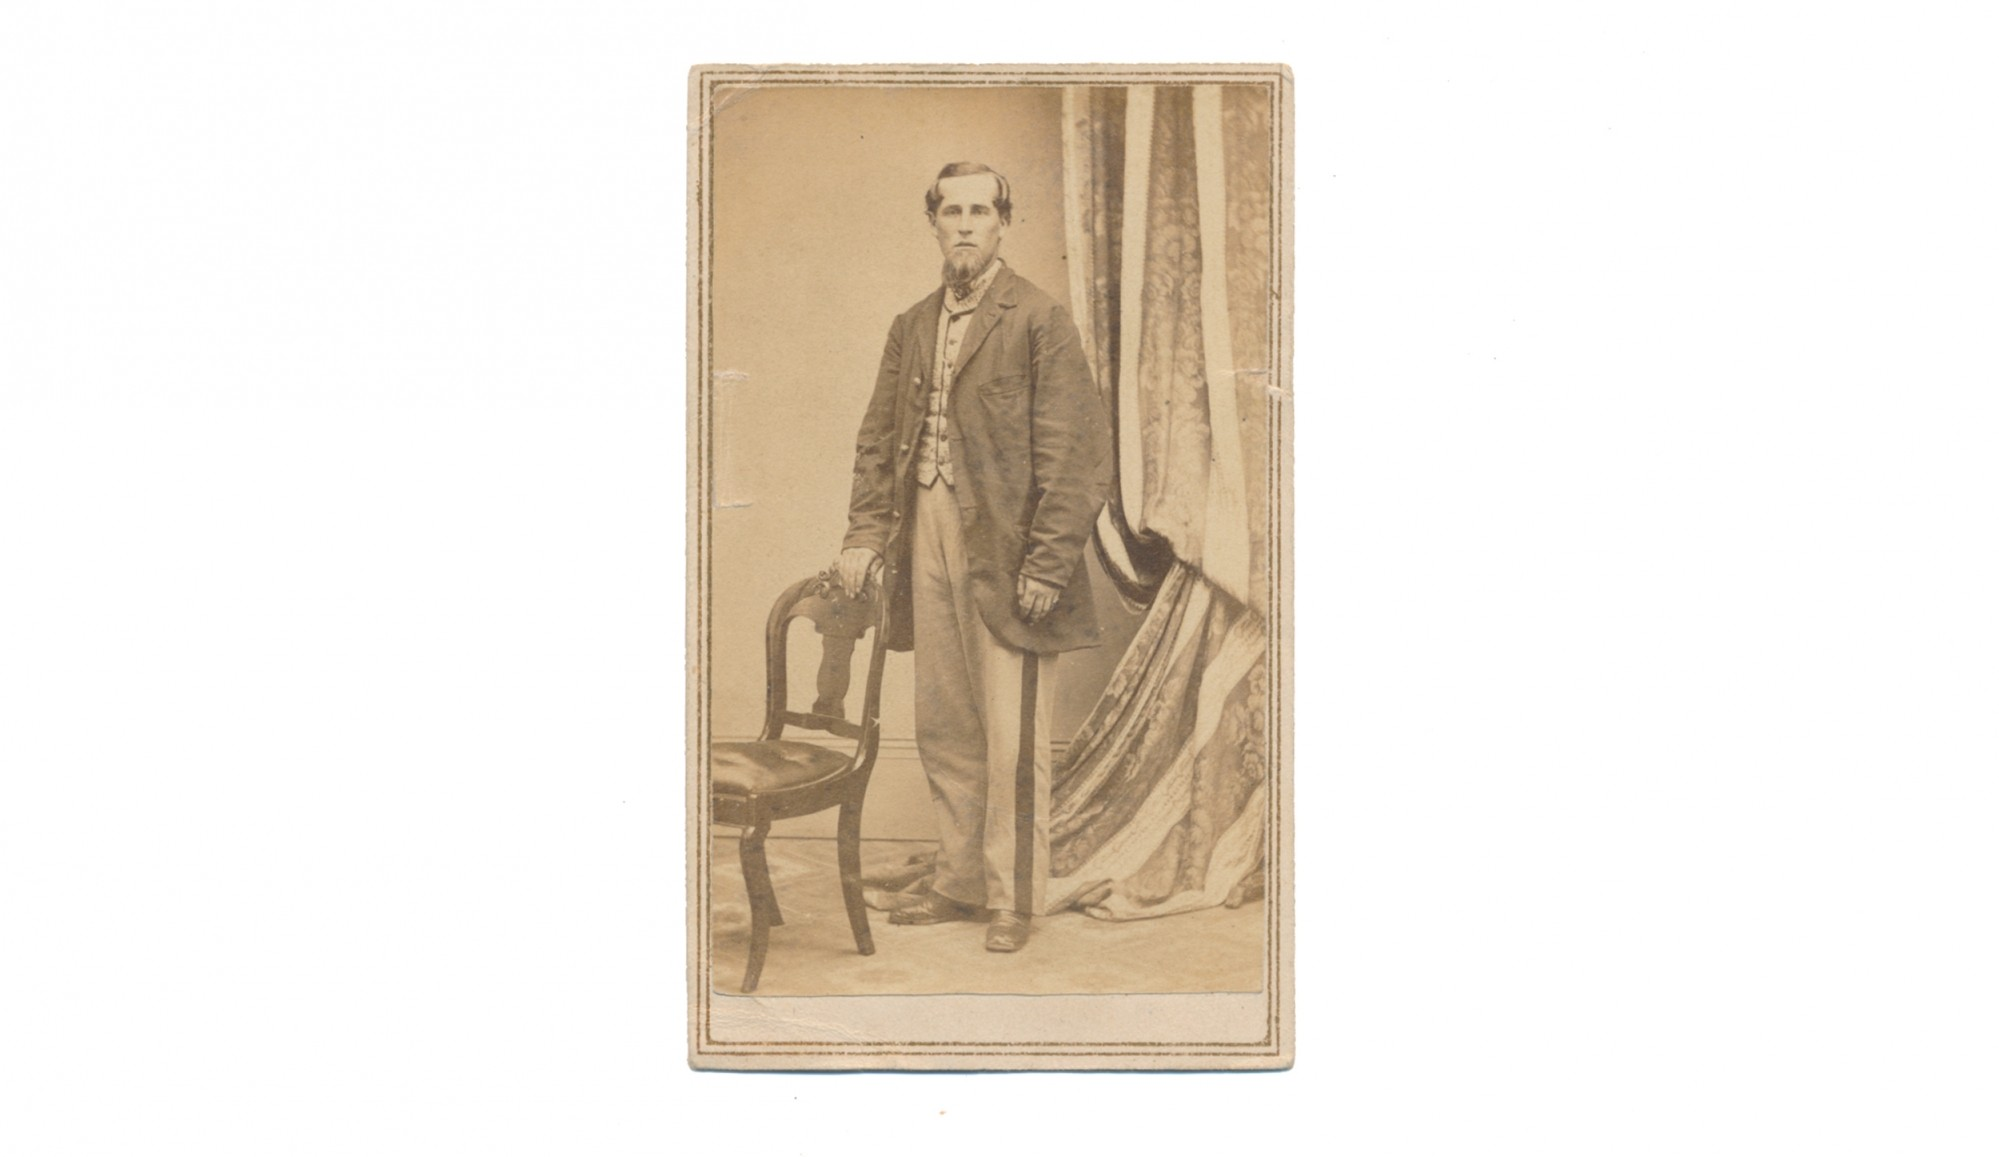 CDV OF JAMES A. BEAKES, 124TH NEW YORK INFANTRY